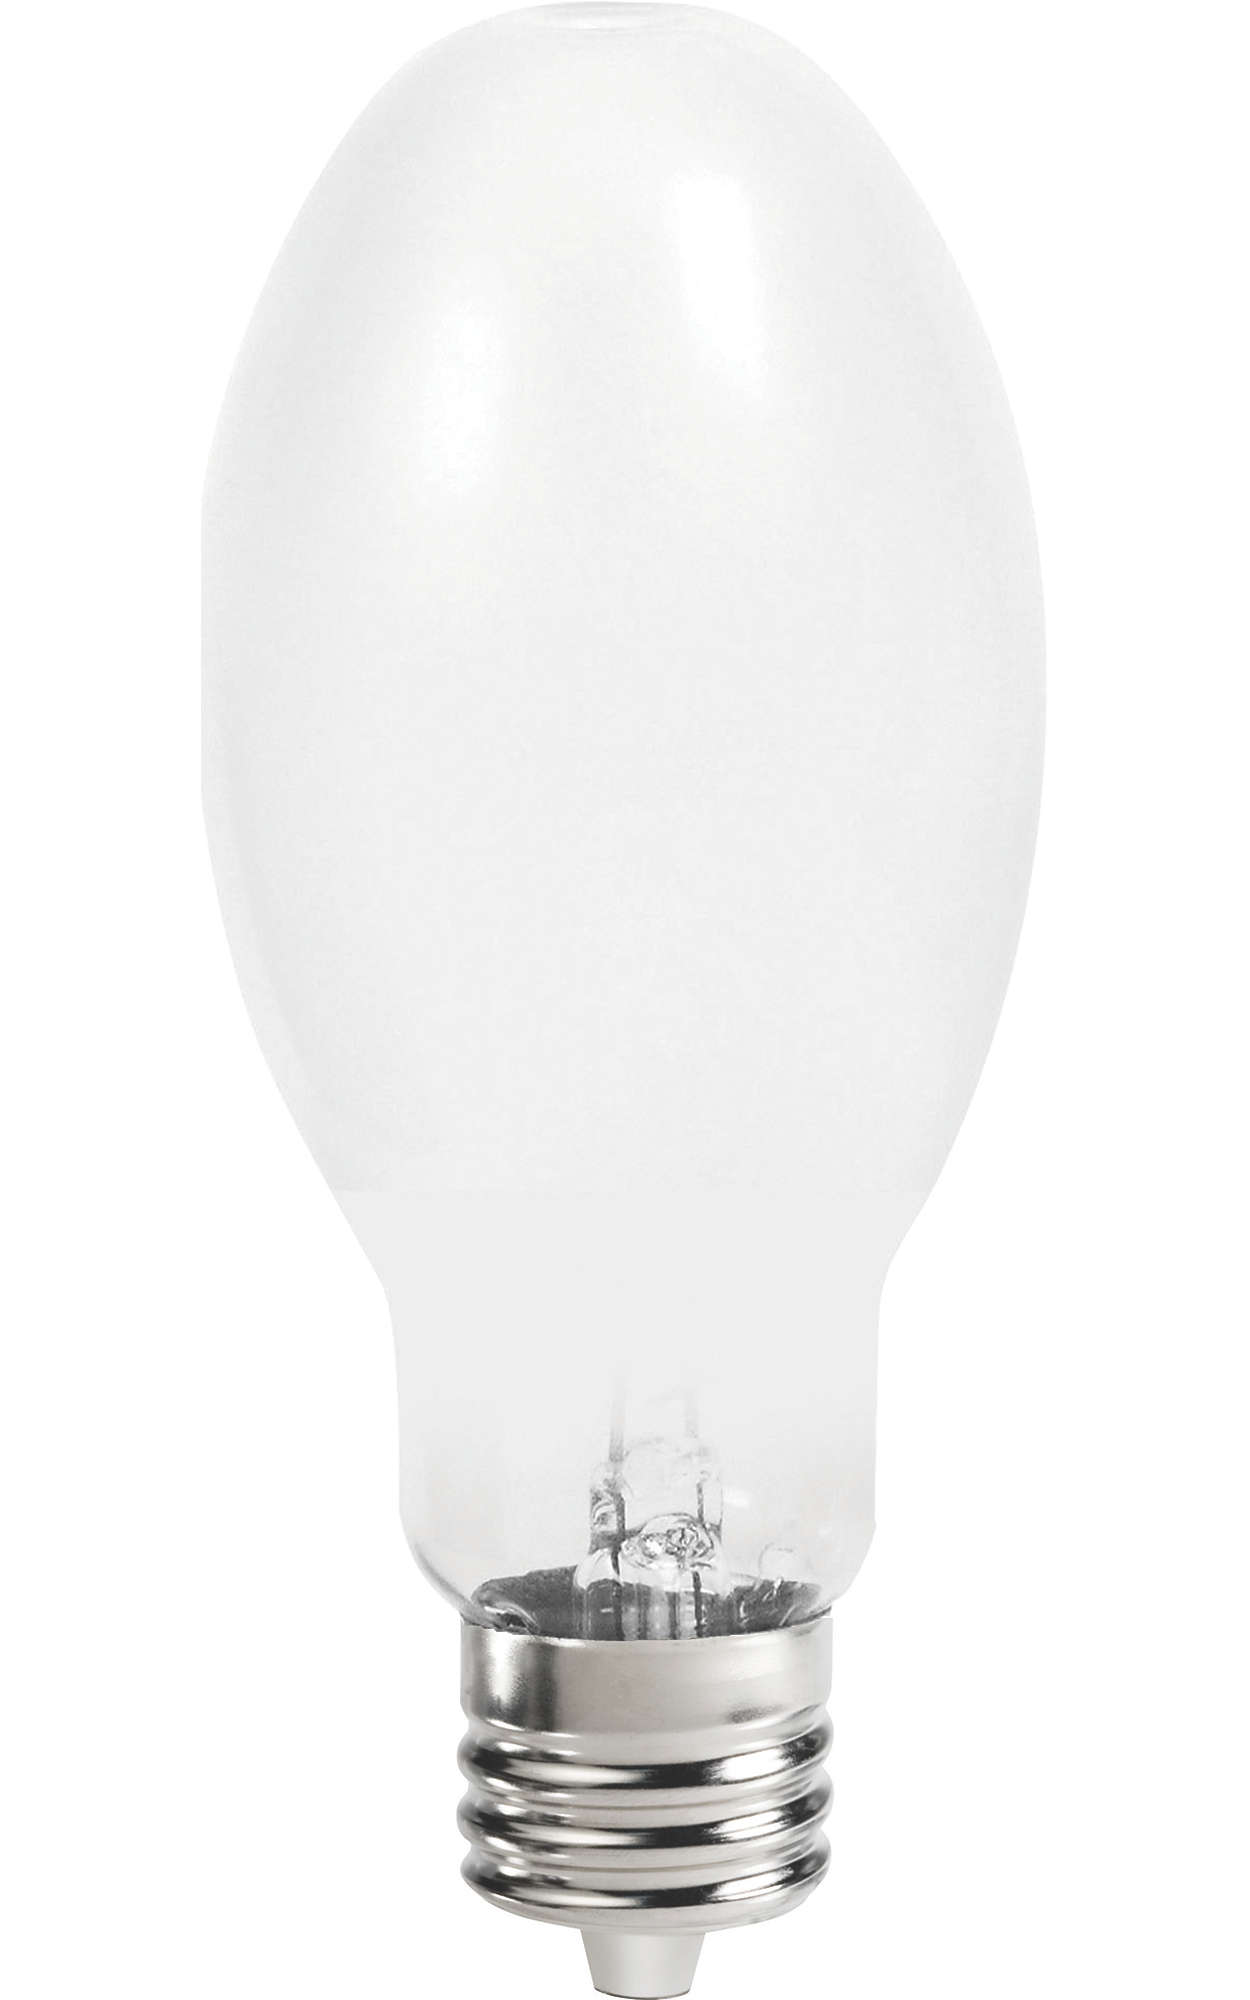 Direct retrofit and long life with immediate energy savings